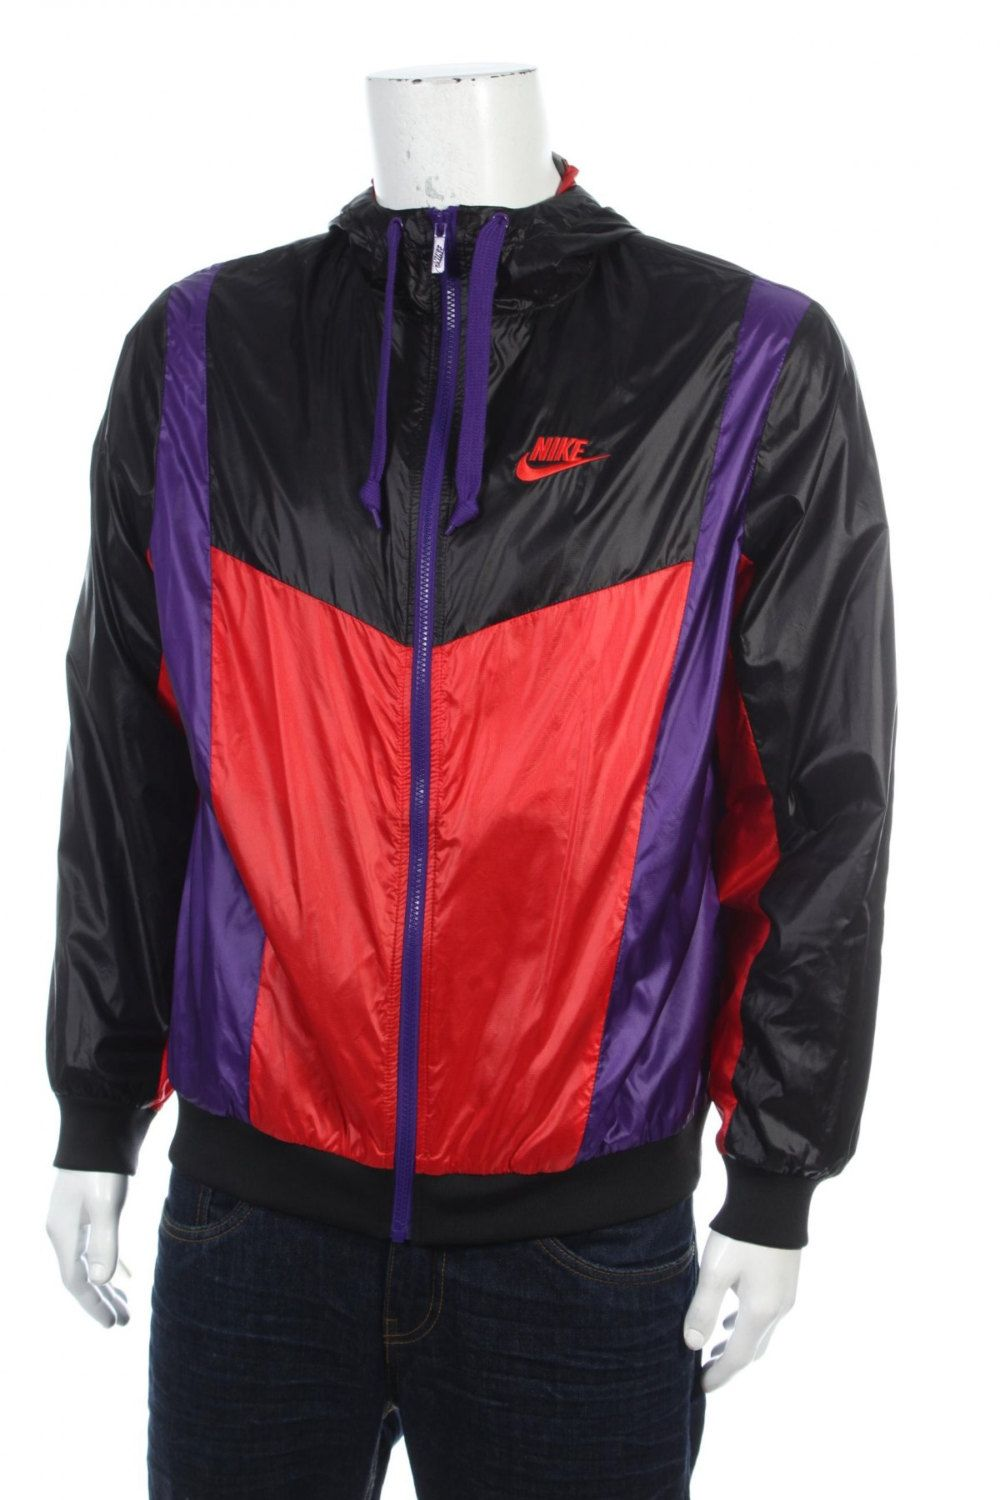 d5baefedb4 Vintage 90s Nike Swoosh windbreaker jacket Remake Hip Hop Rap Style Color  Block Purple Black Red Size L by VapeoVintage on Etsy